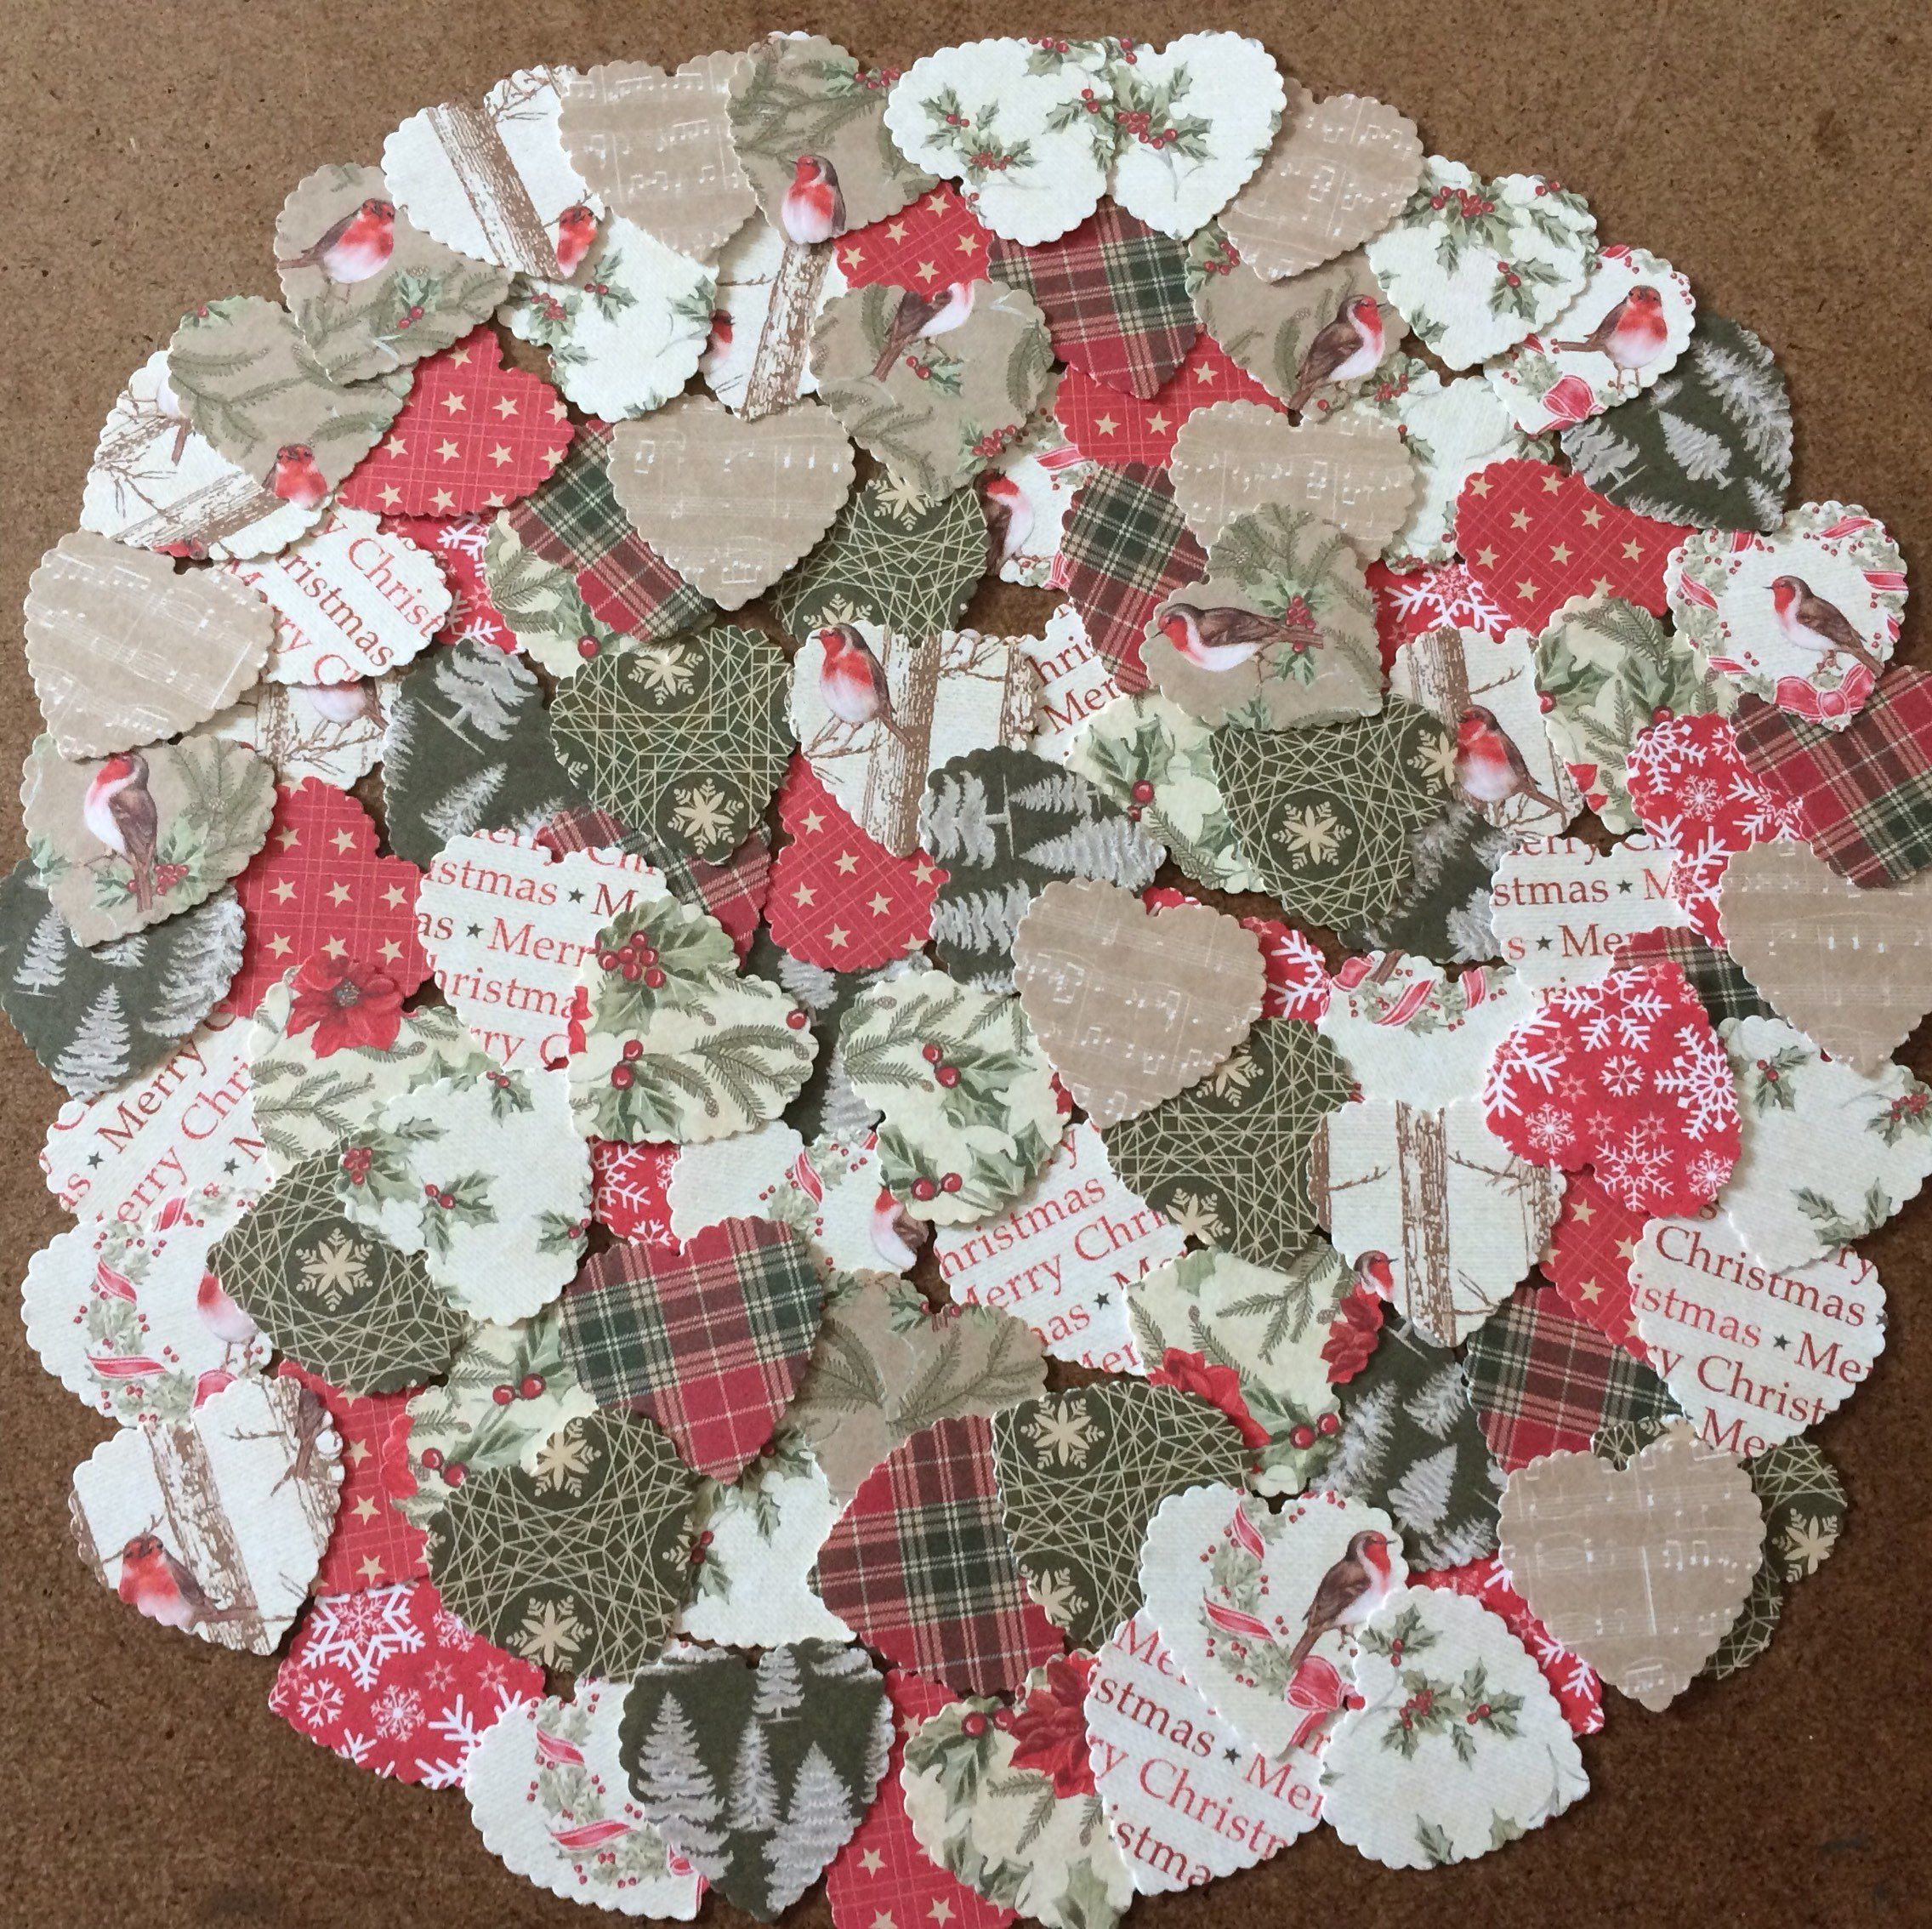 Christmas Toppers For Card Making.100 Heart Christmas Toppers Card Shapes Embellishment Card